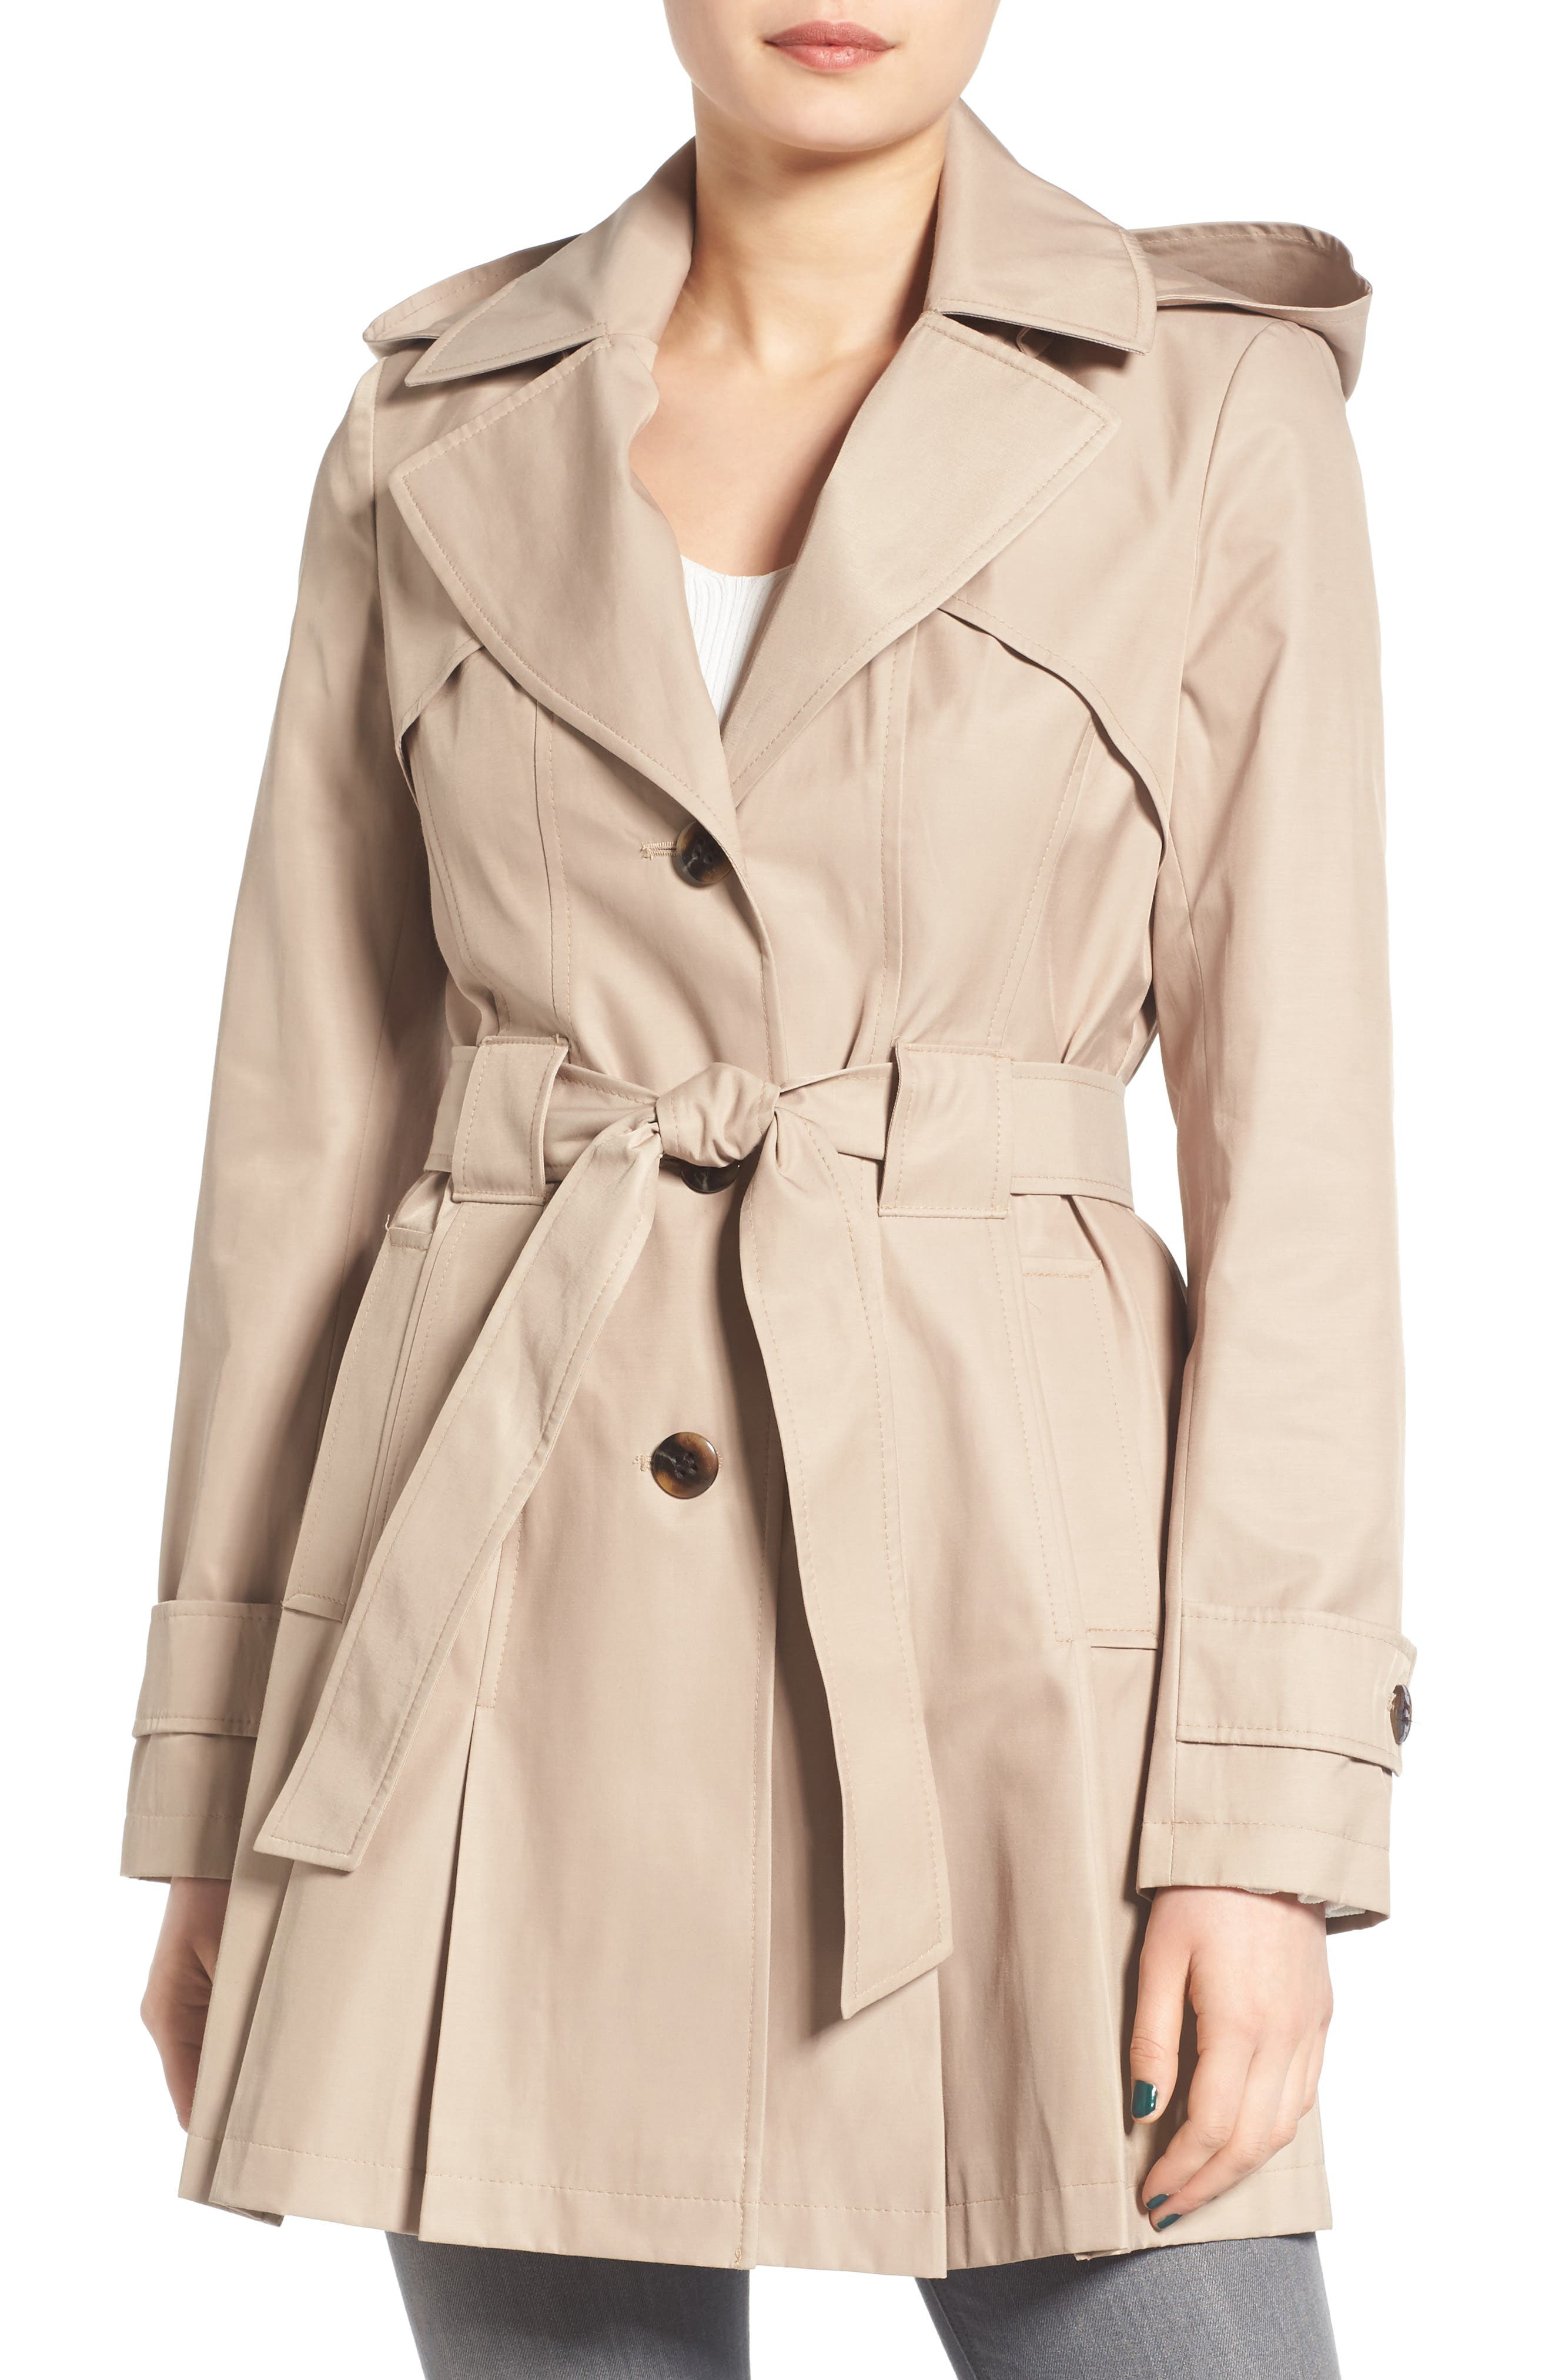 'Scarpa' Hooded Single Breasted Trench Coat,                         Main,                         color, 257